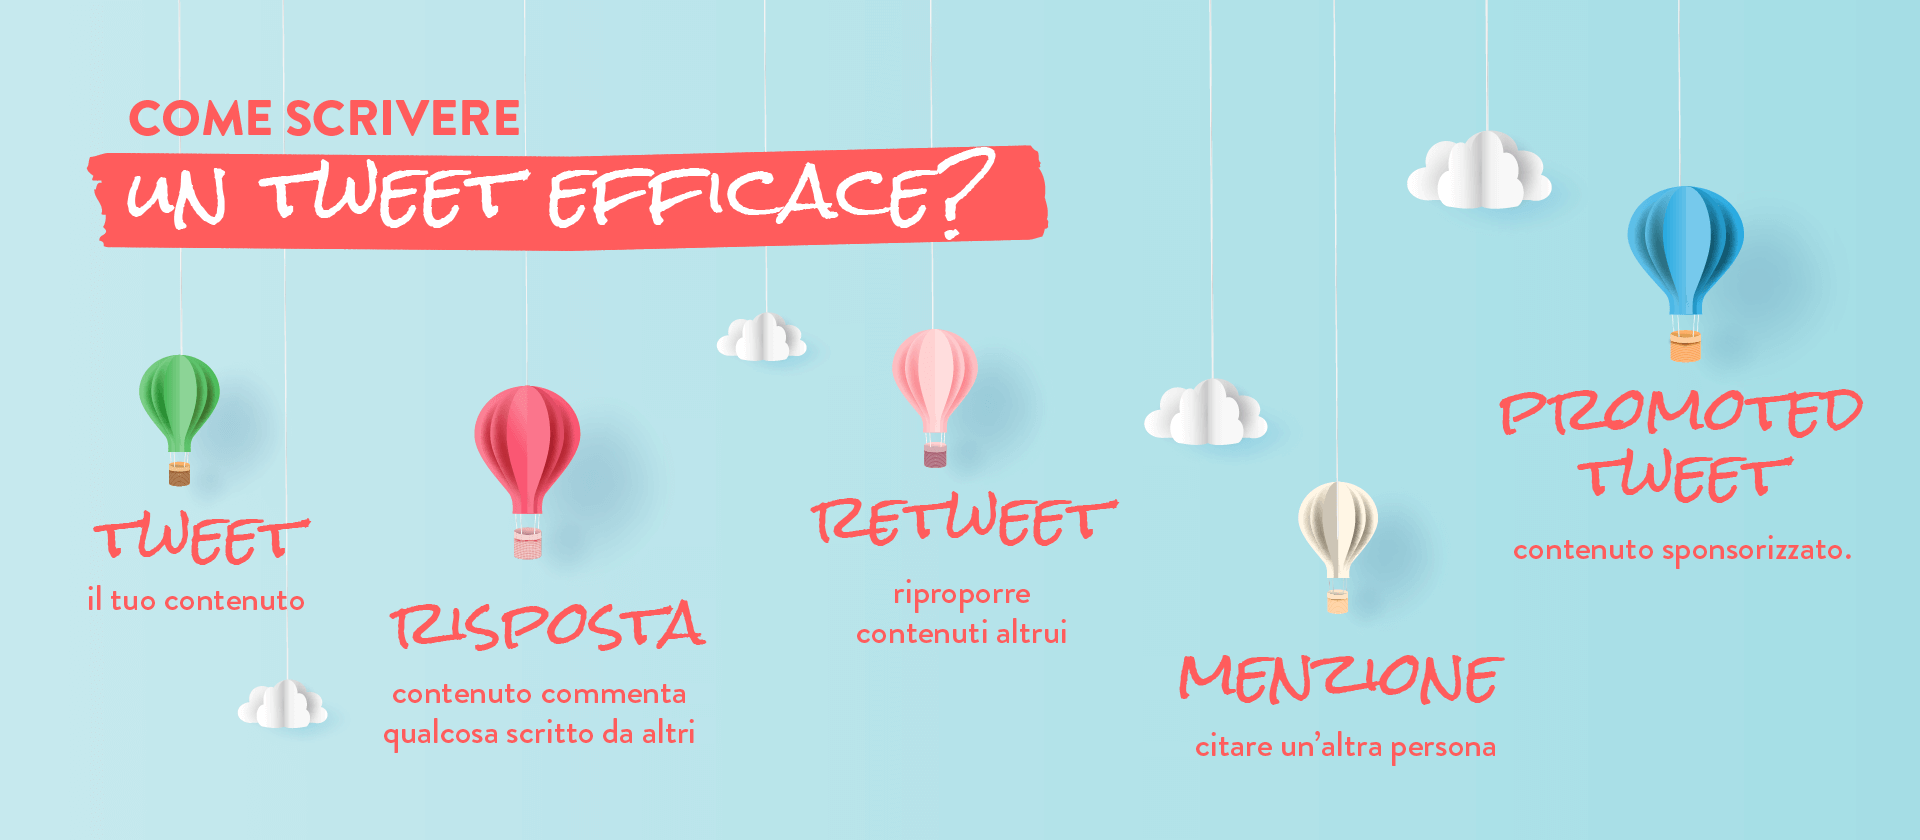 come scrivere tweet efficace